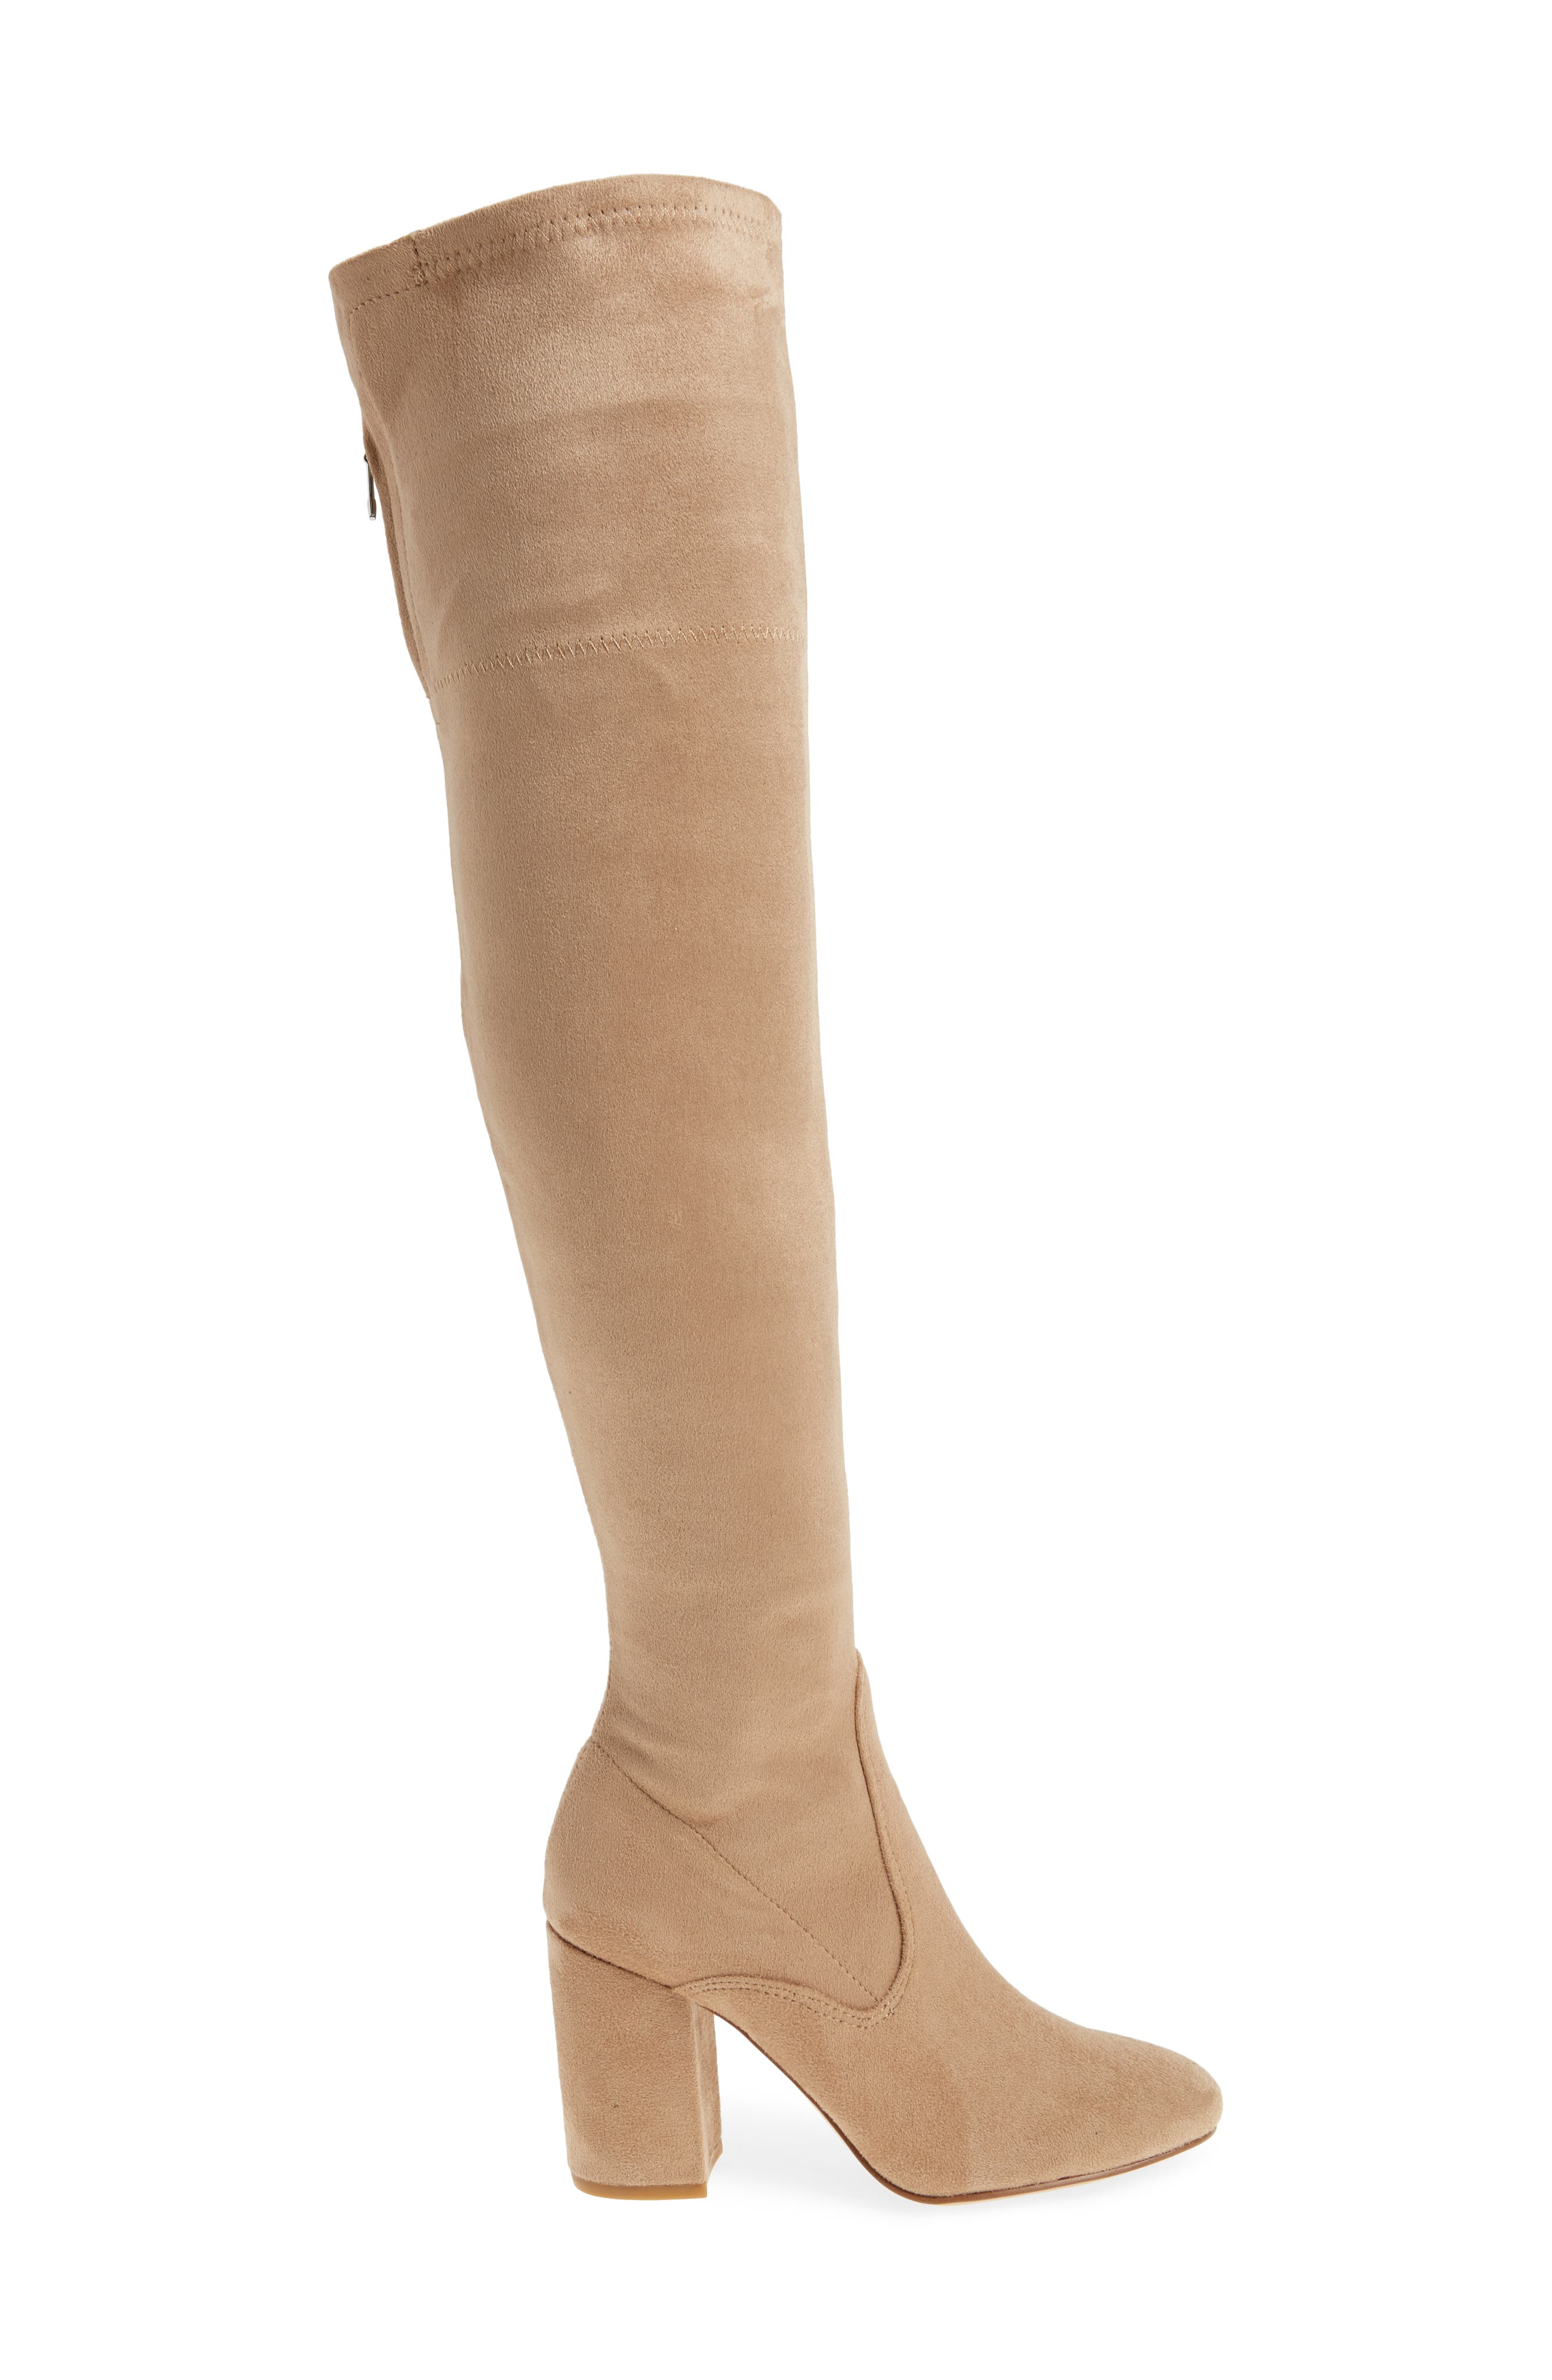 Carah Over the Knee Boot,                             Alternate thumbnail 12, color,